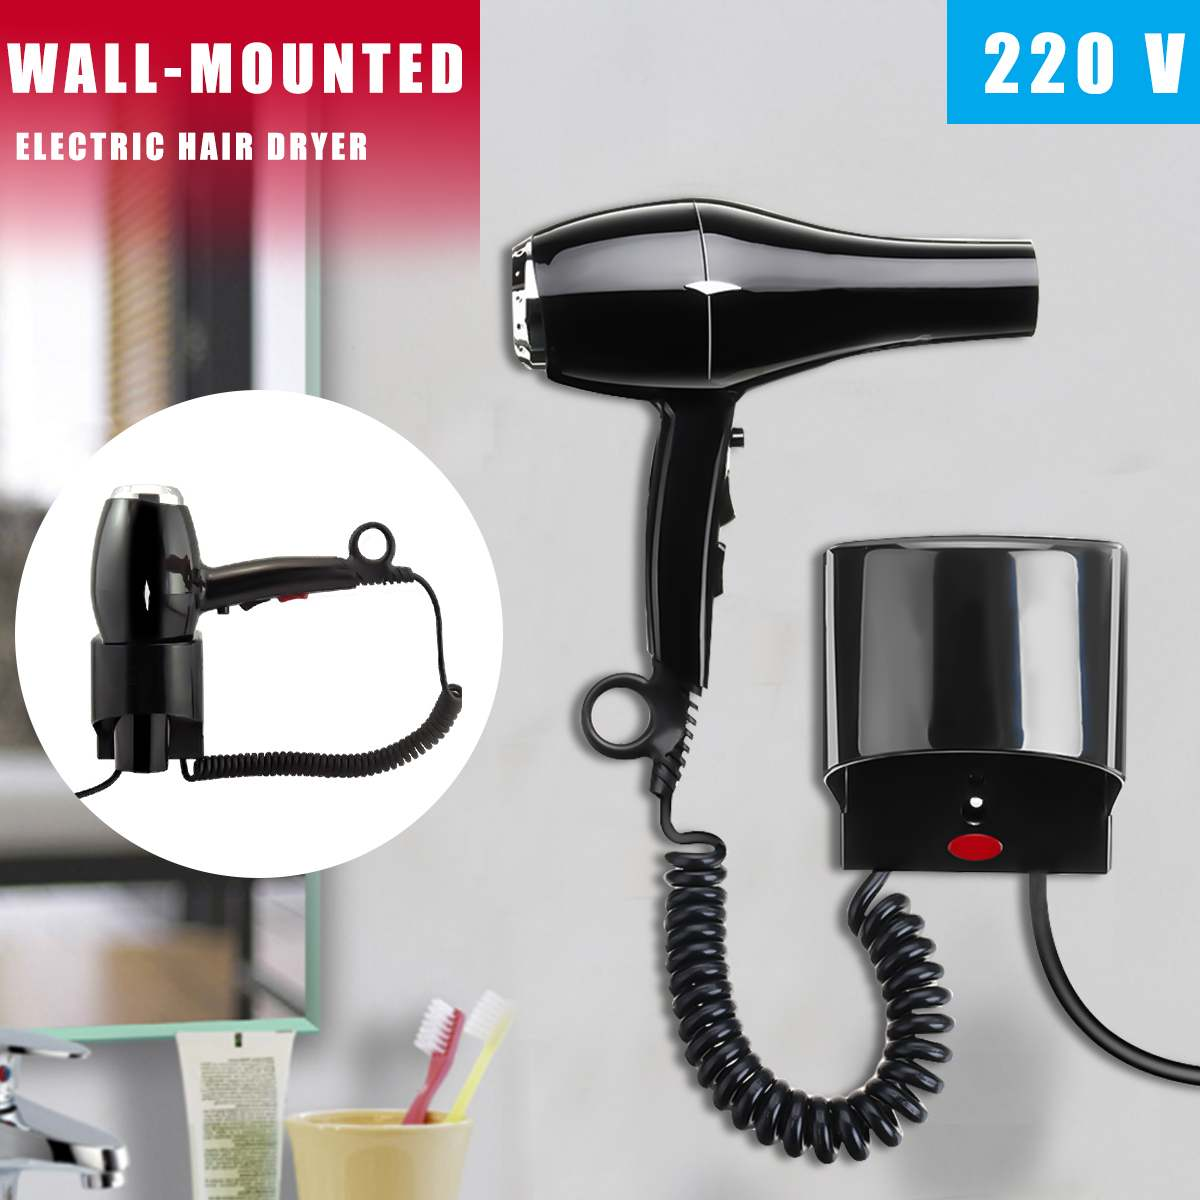 1600W 220V Wall Mount Hanging Type Electric Hair Dryer Hot Cold Wind Adjustable Hairdryer Household Home Hotel Bathroom dmwd hot wind blow hair dryer electric wall mount hairdryers hotel bathroom household dry skin hanging wall blowers with stocket